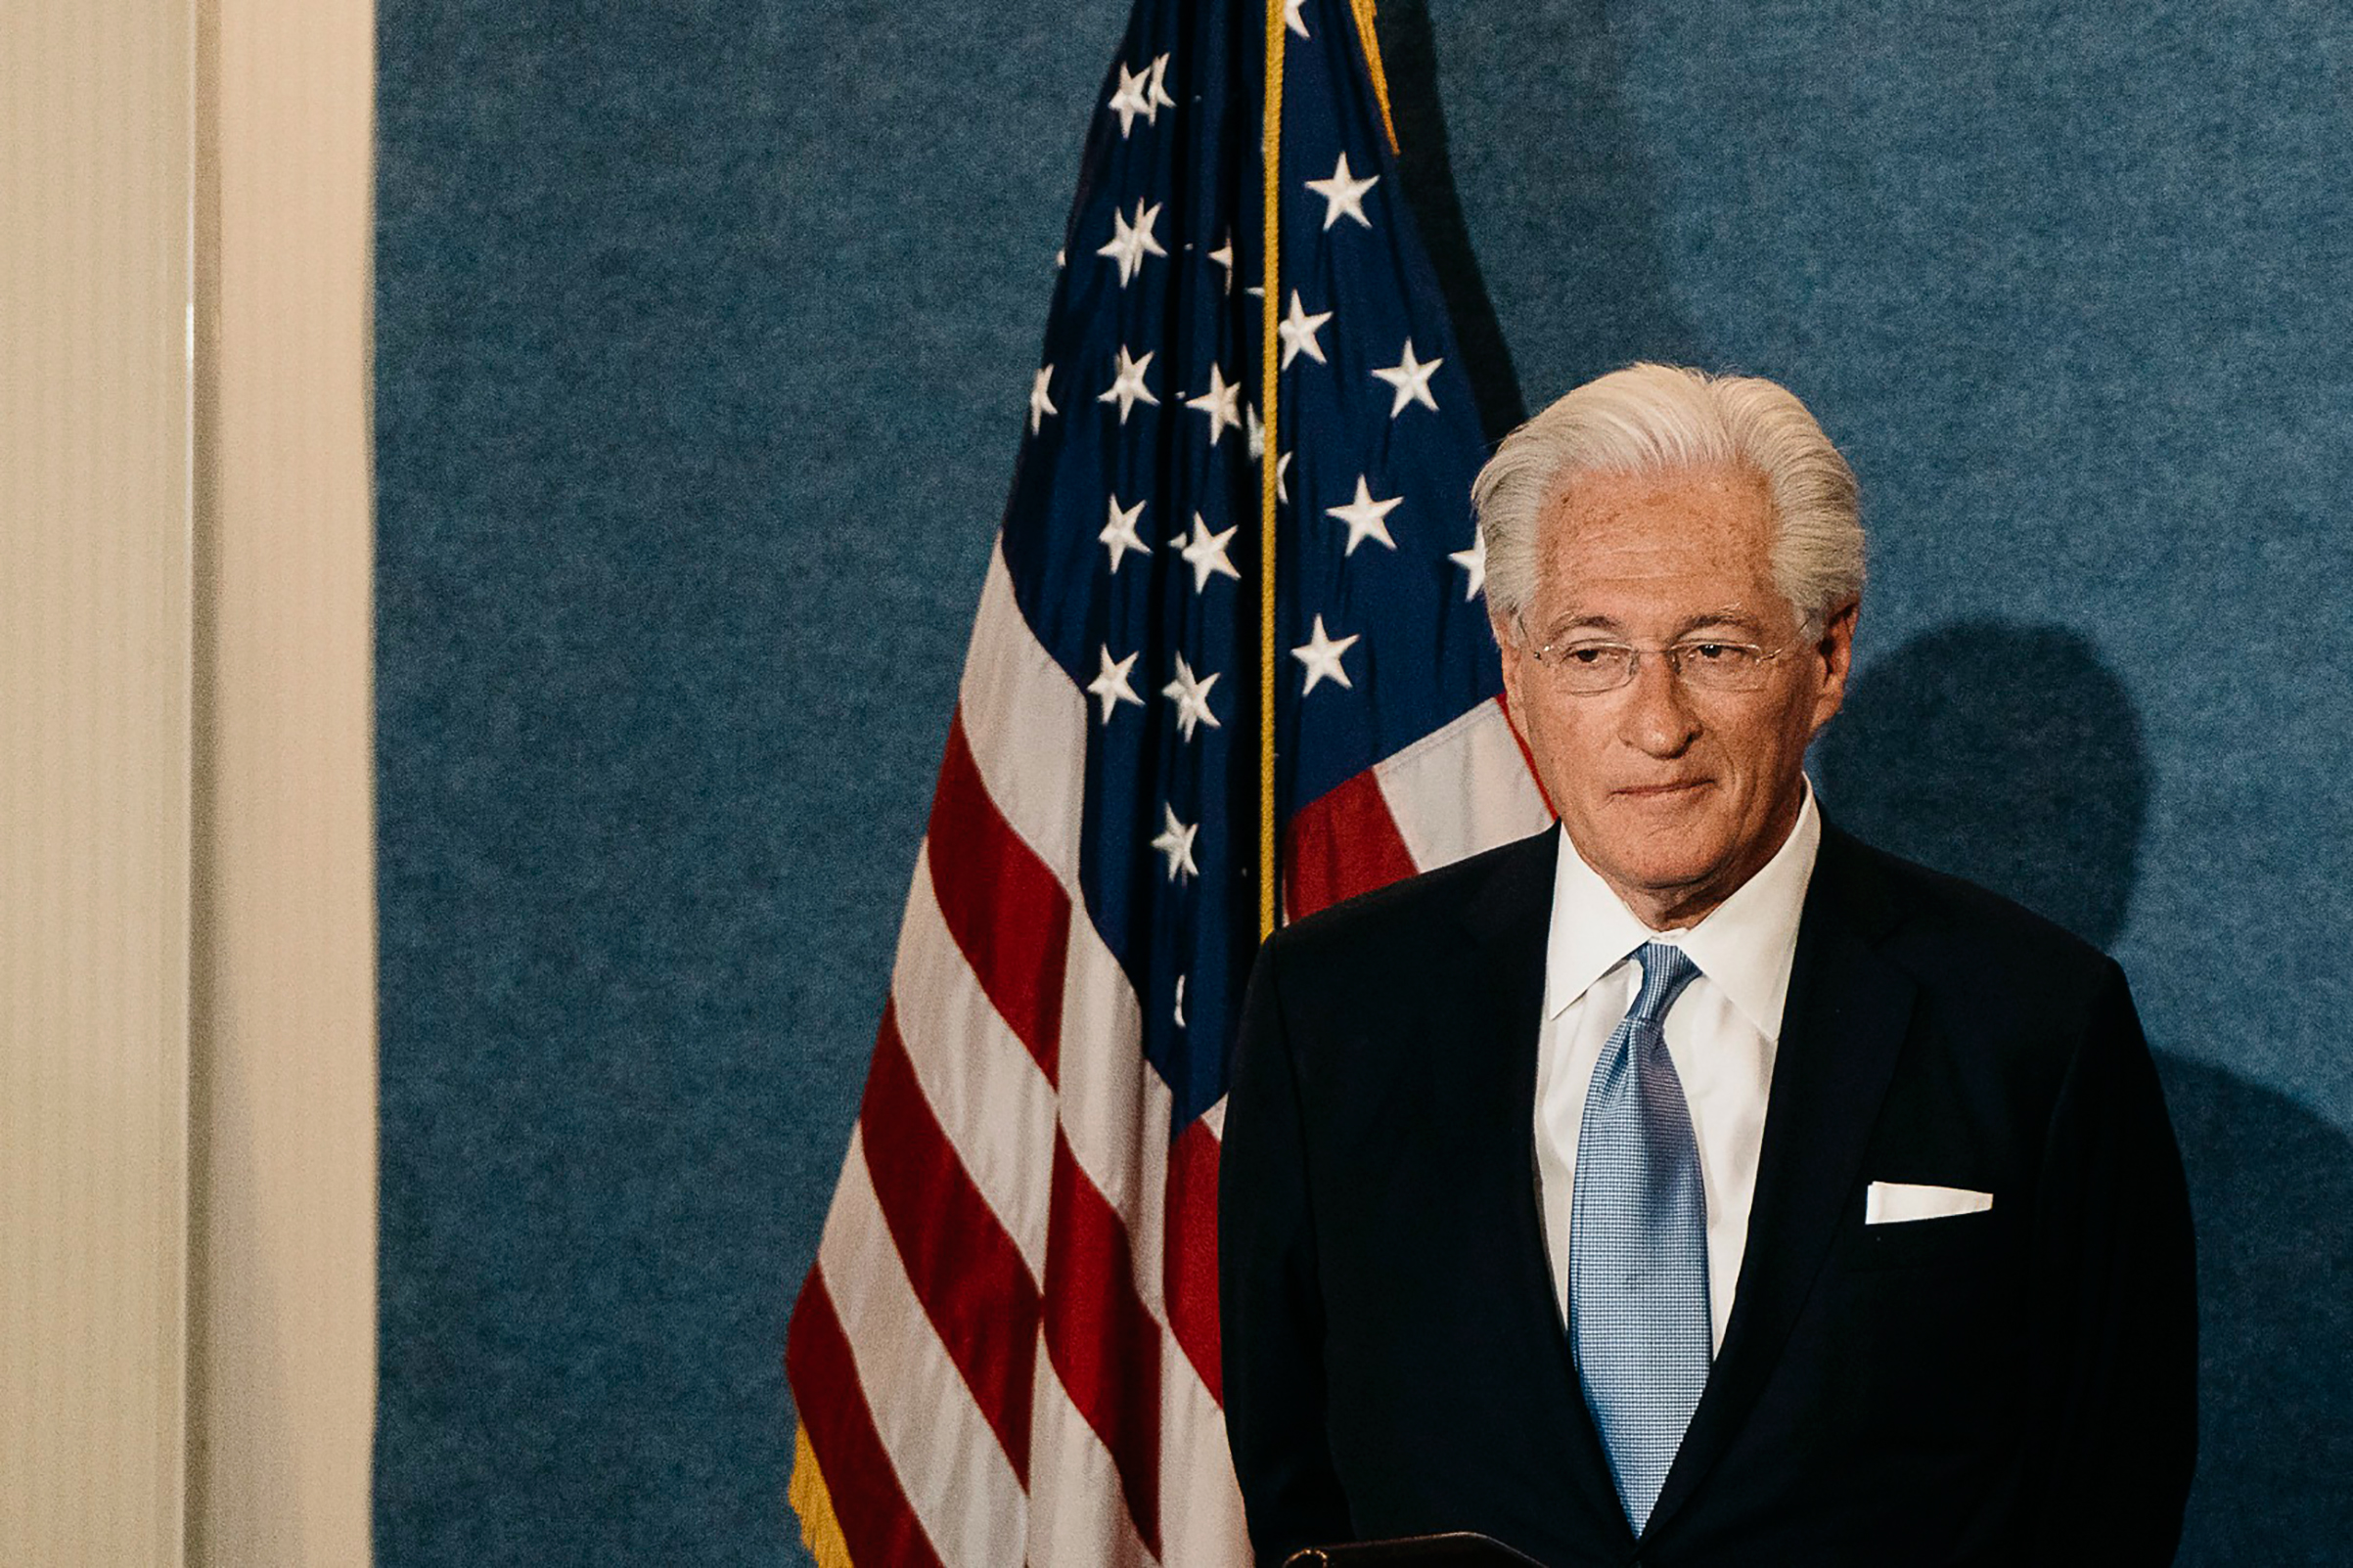 Kasowitz has represented Trump for more than 15 years